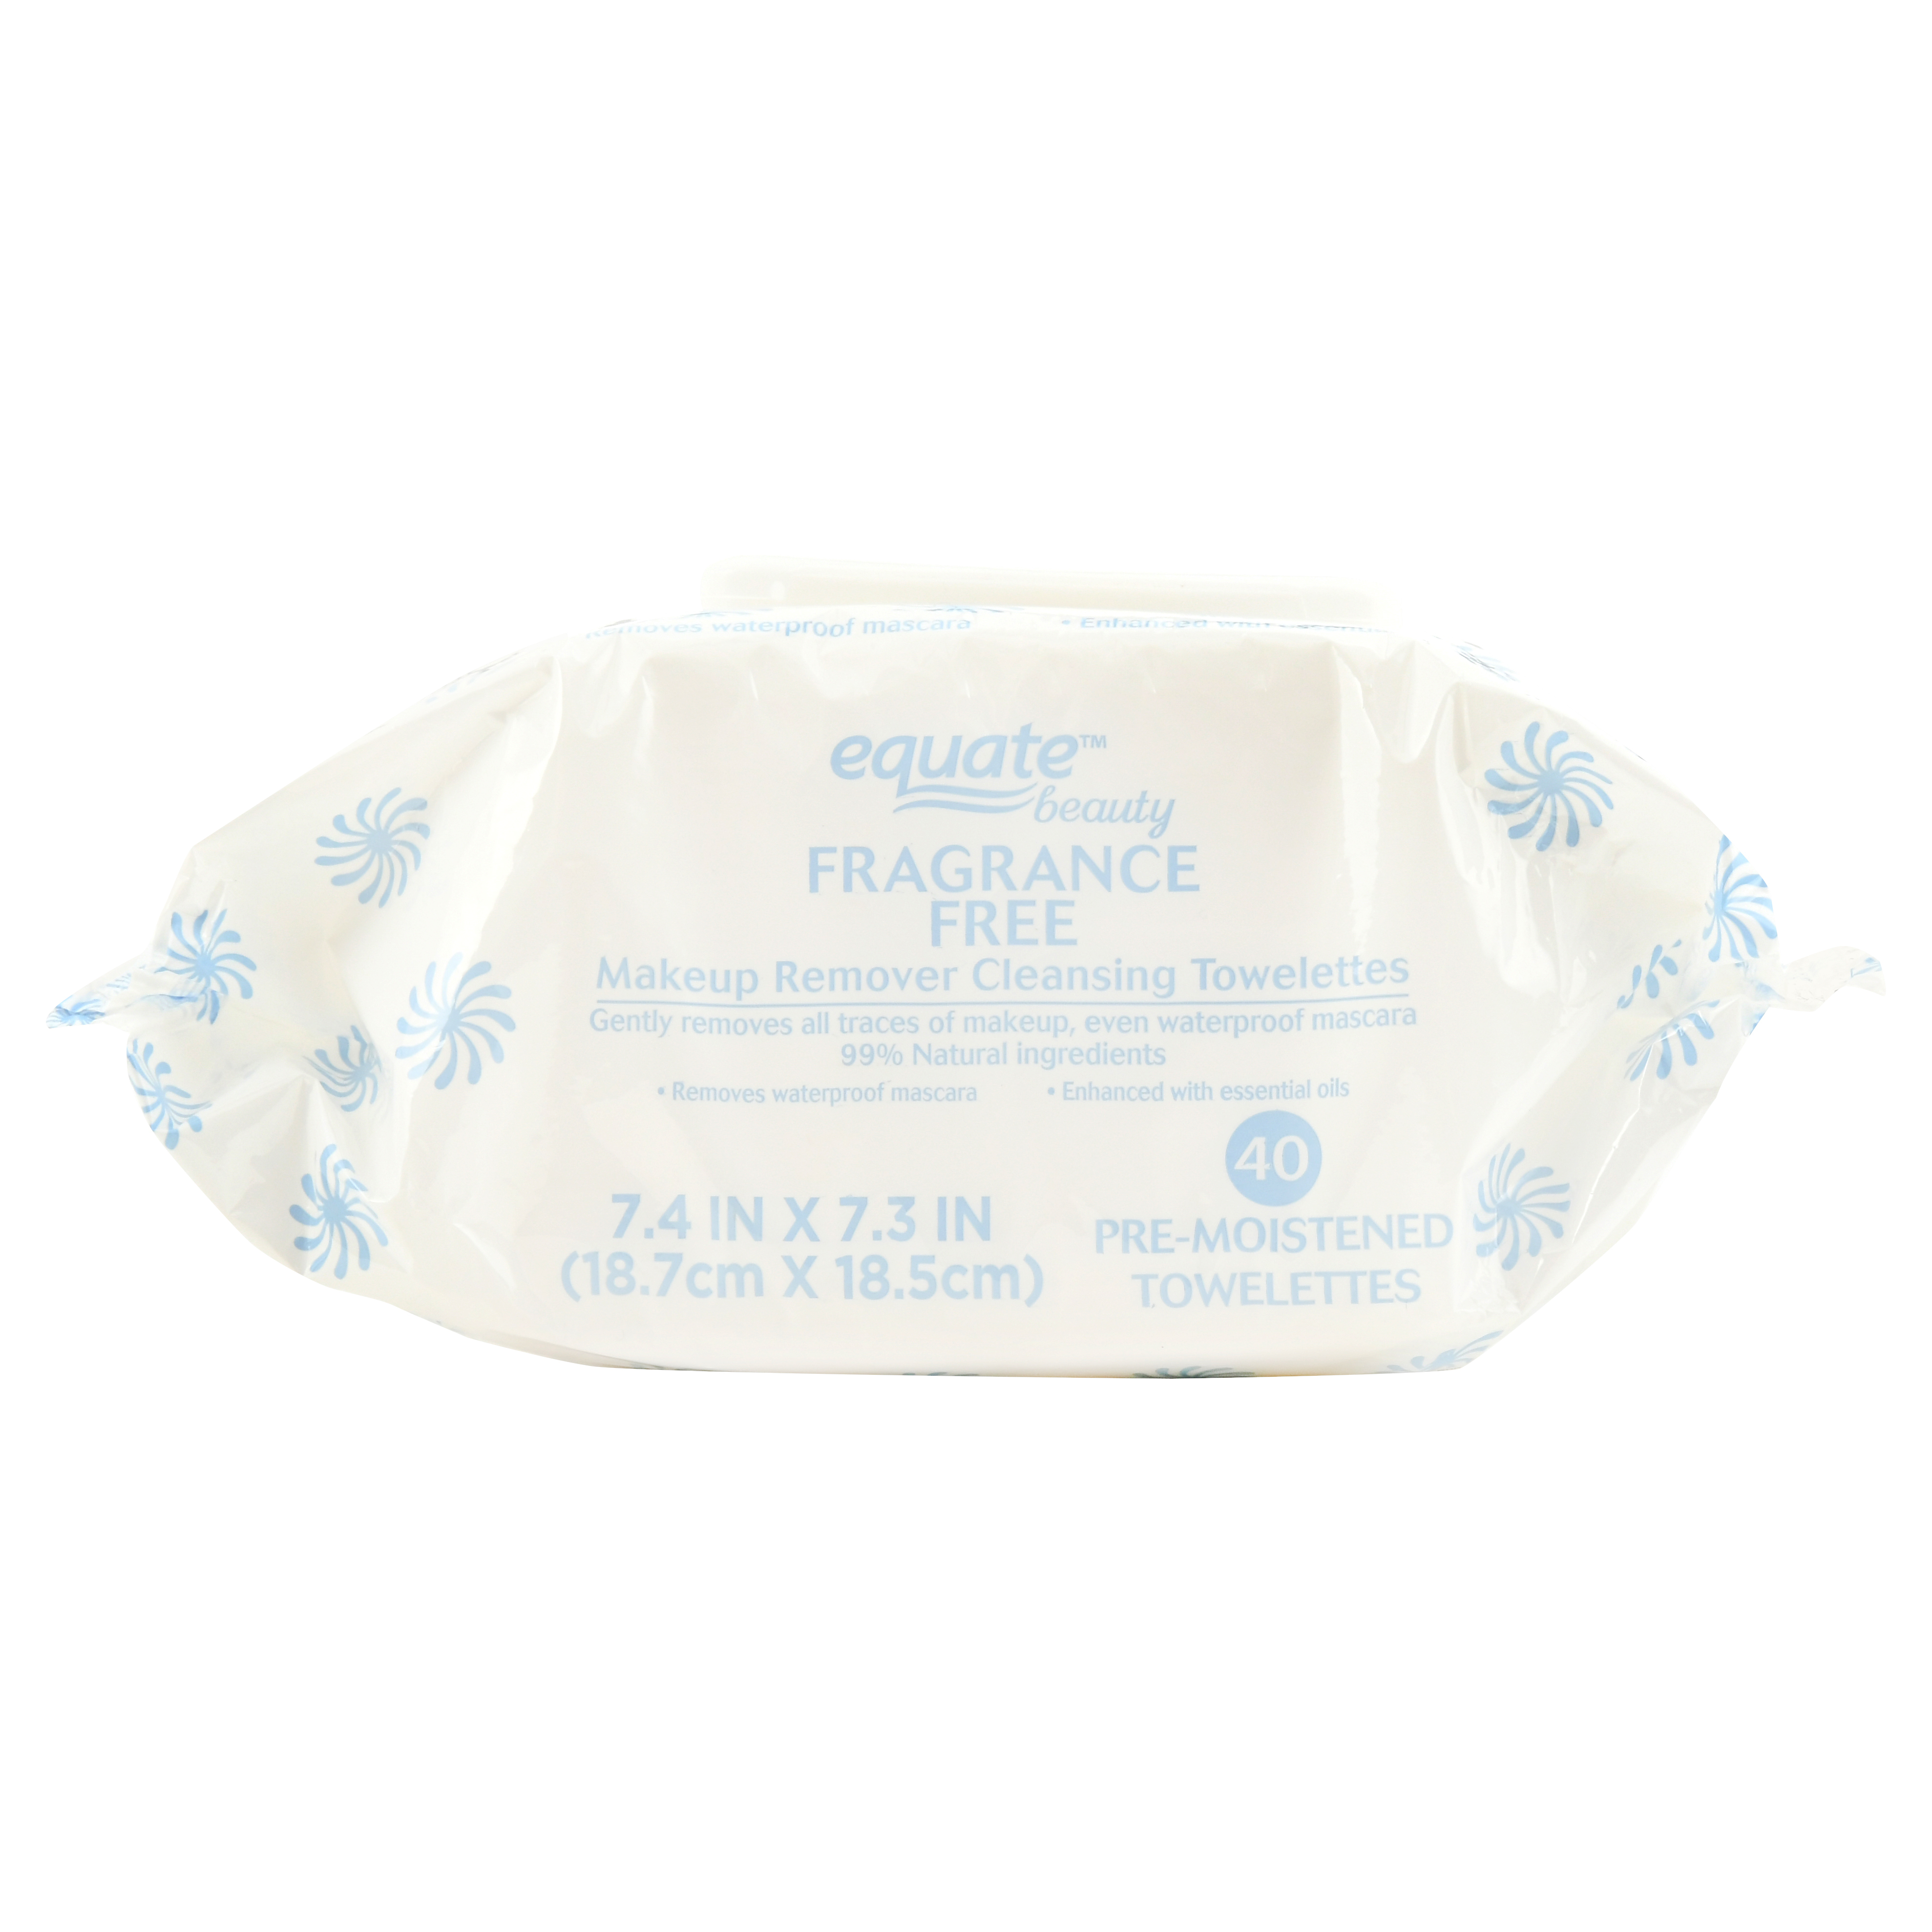 Equate Beauty Fragrance Free Makeup Remover Towelettes, 40 Ct